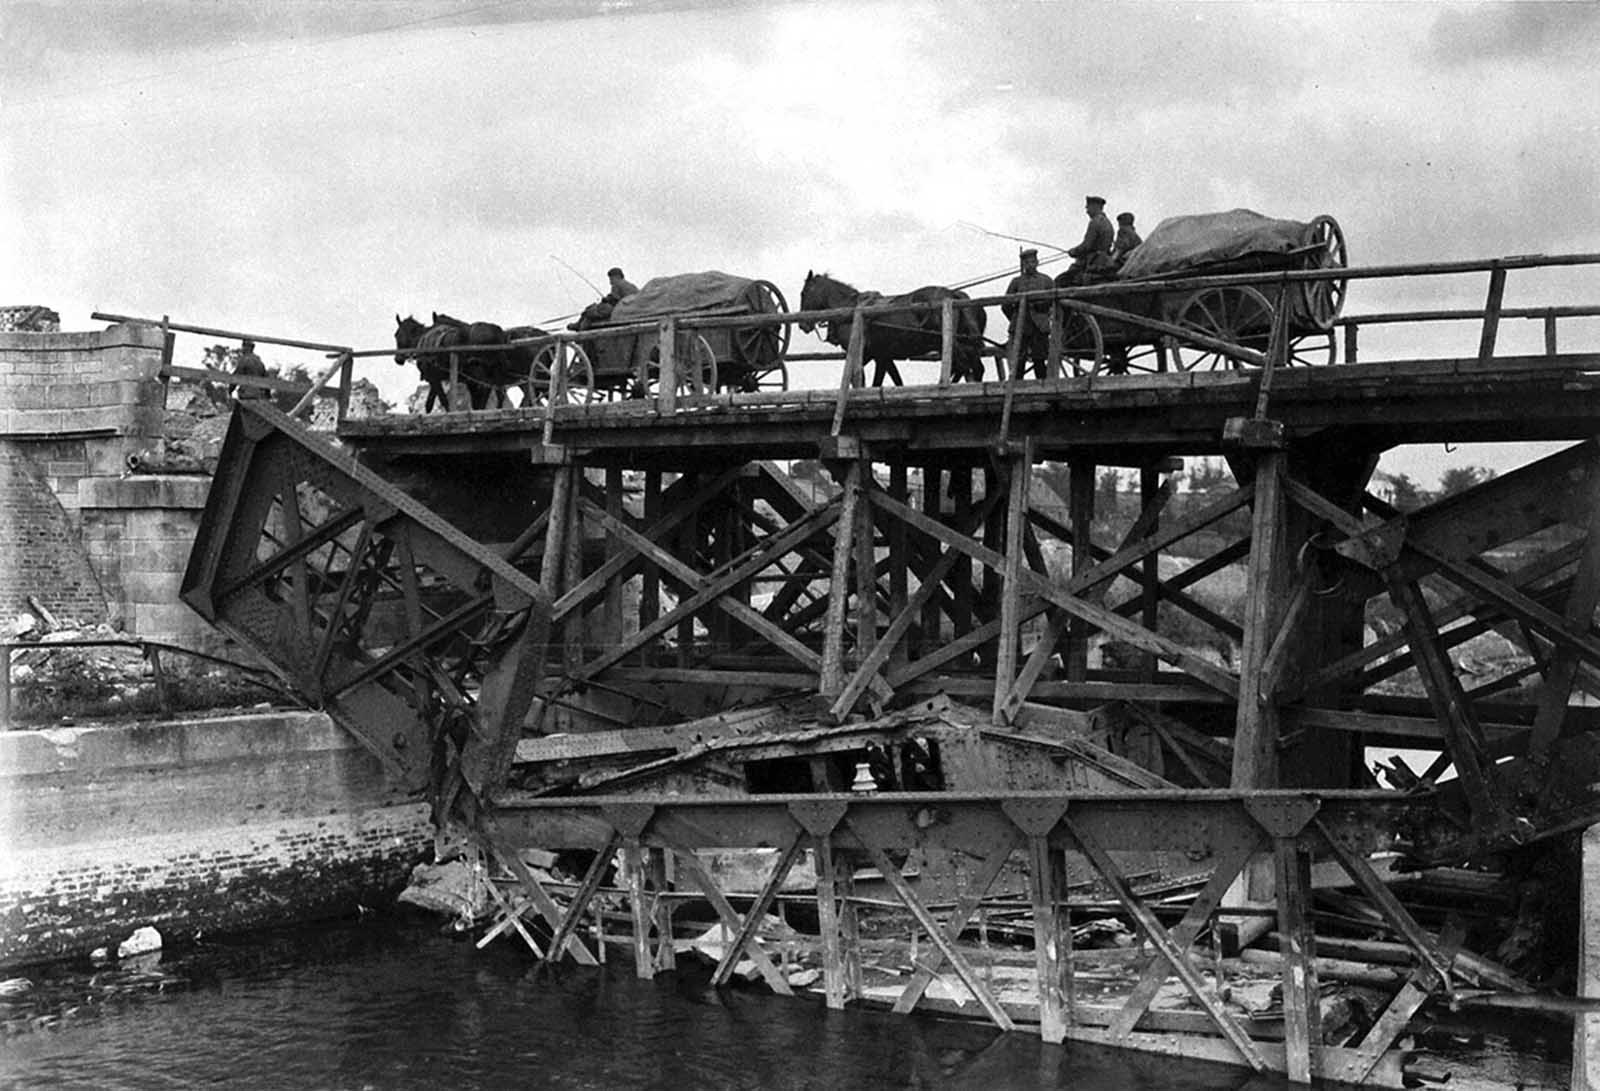 On the site where a steel bridge was destroyed, a wooden temporary bridge has been built in place. Note that an English tank which fell in the river when the former bridge was demolished now serves as part of the foundation for the new bridge over the Scheldt at Masnieres.